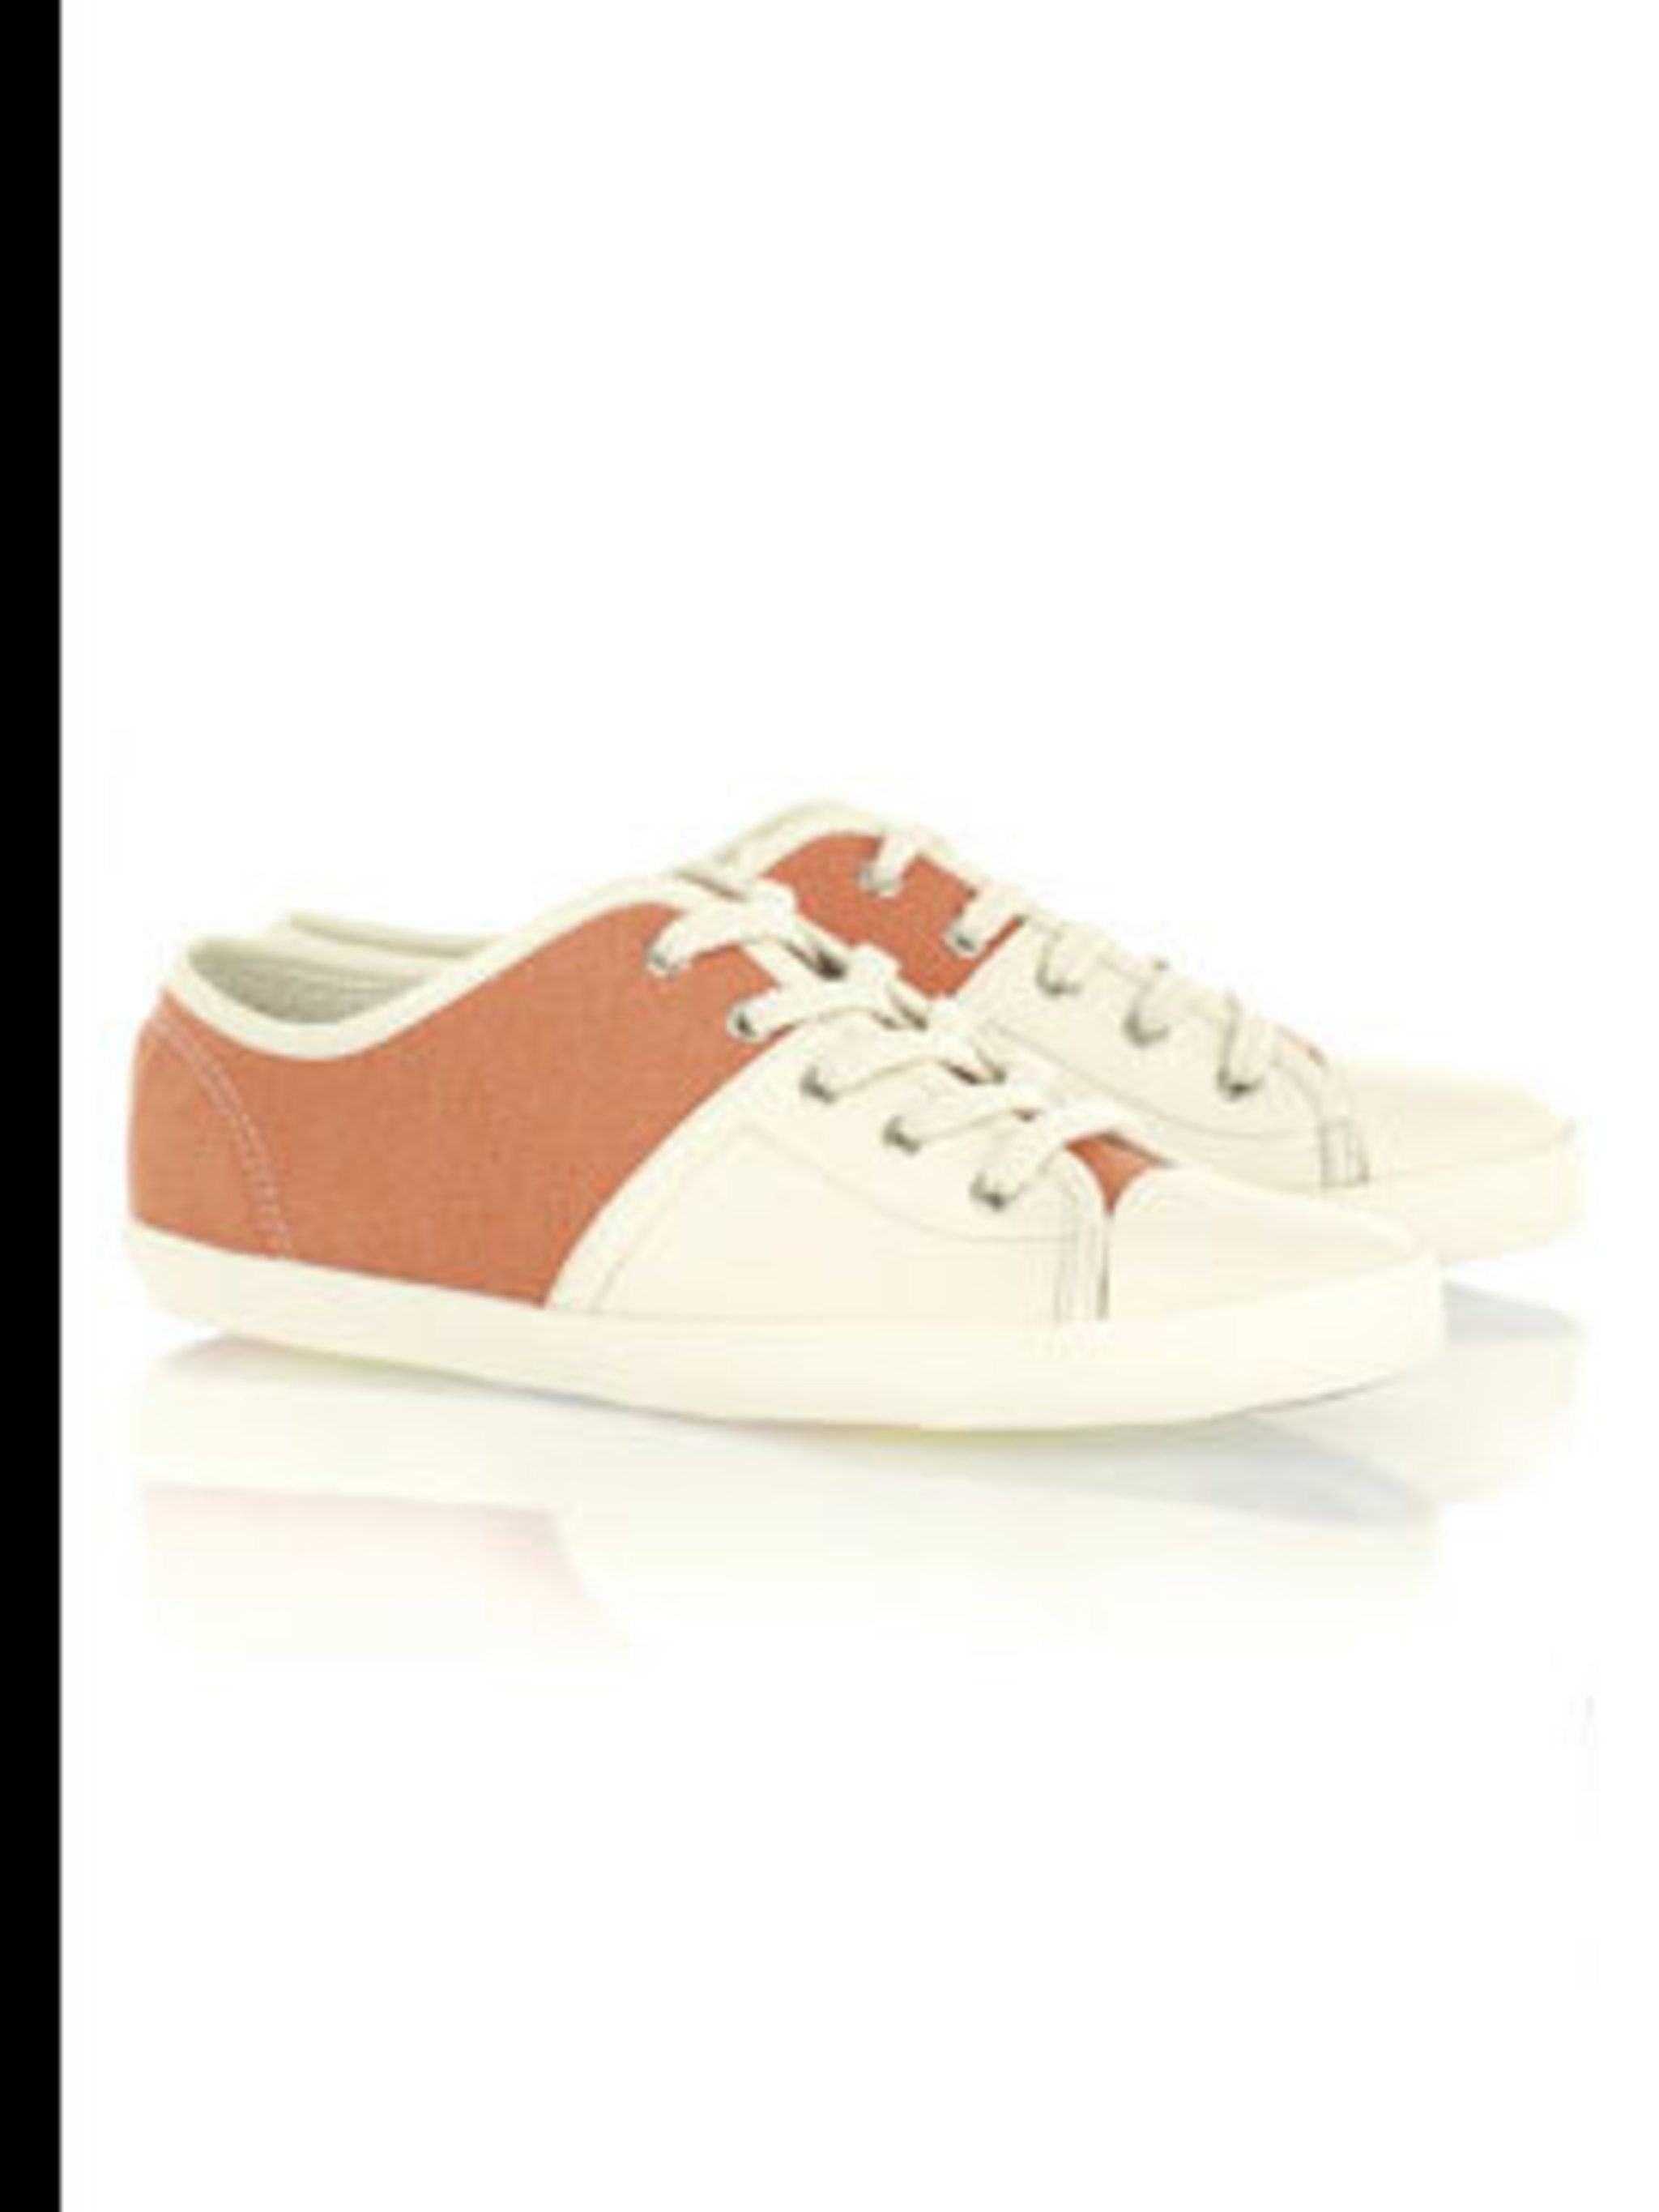 "<p>Plimsolls, £108 by See by Chloe at <a href=""http://www.net-a-porter.com/product/38721"">Net-a-Porter</a></p>"